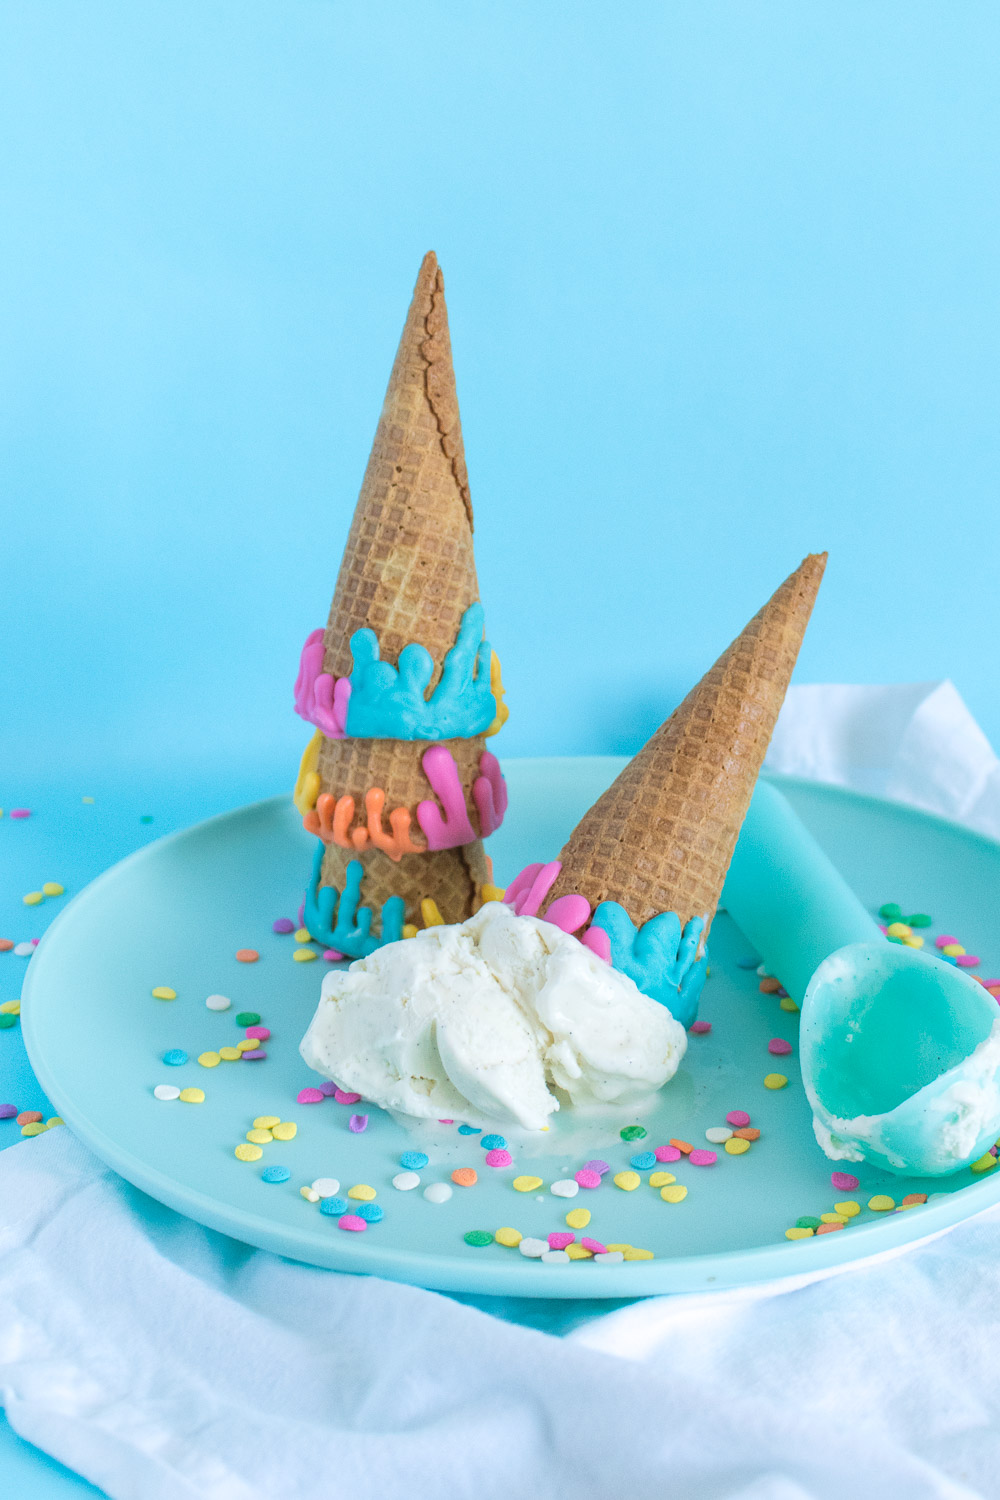 DIY Colorful Dripped Ice Cream Cones | Club Crafted